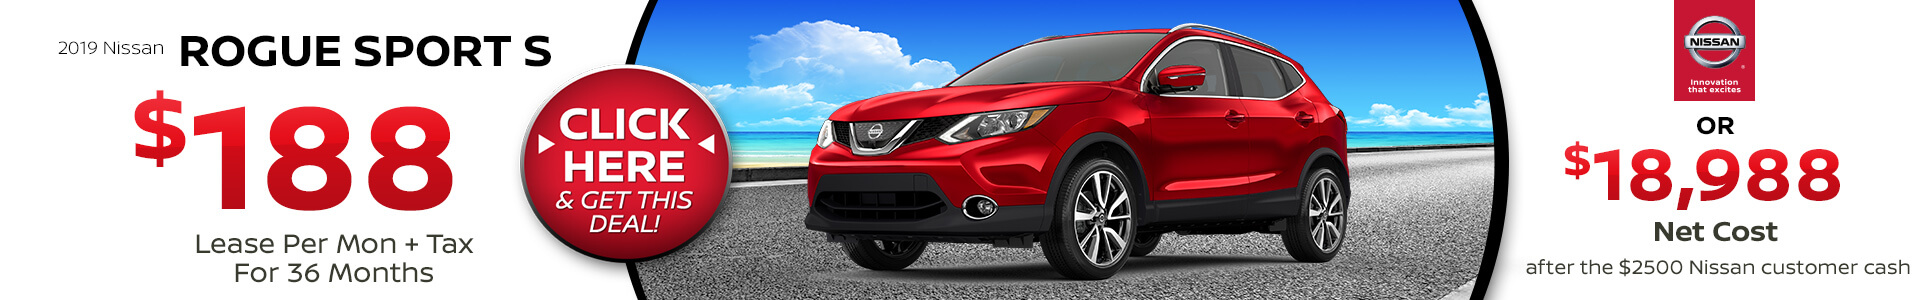 Nissan Rogue Sport $$188 Lease